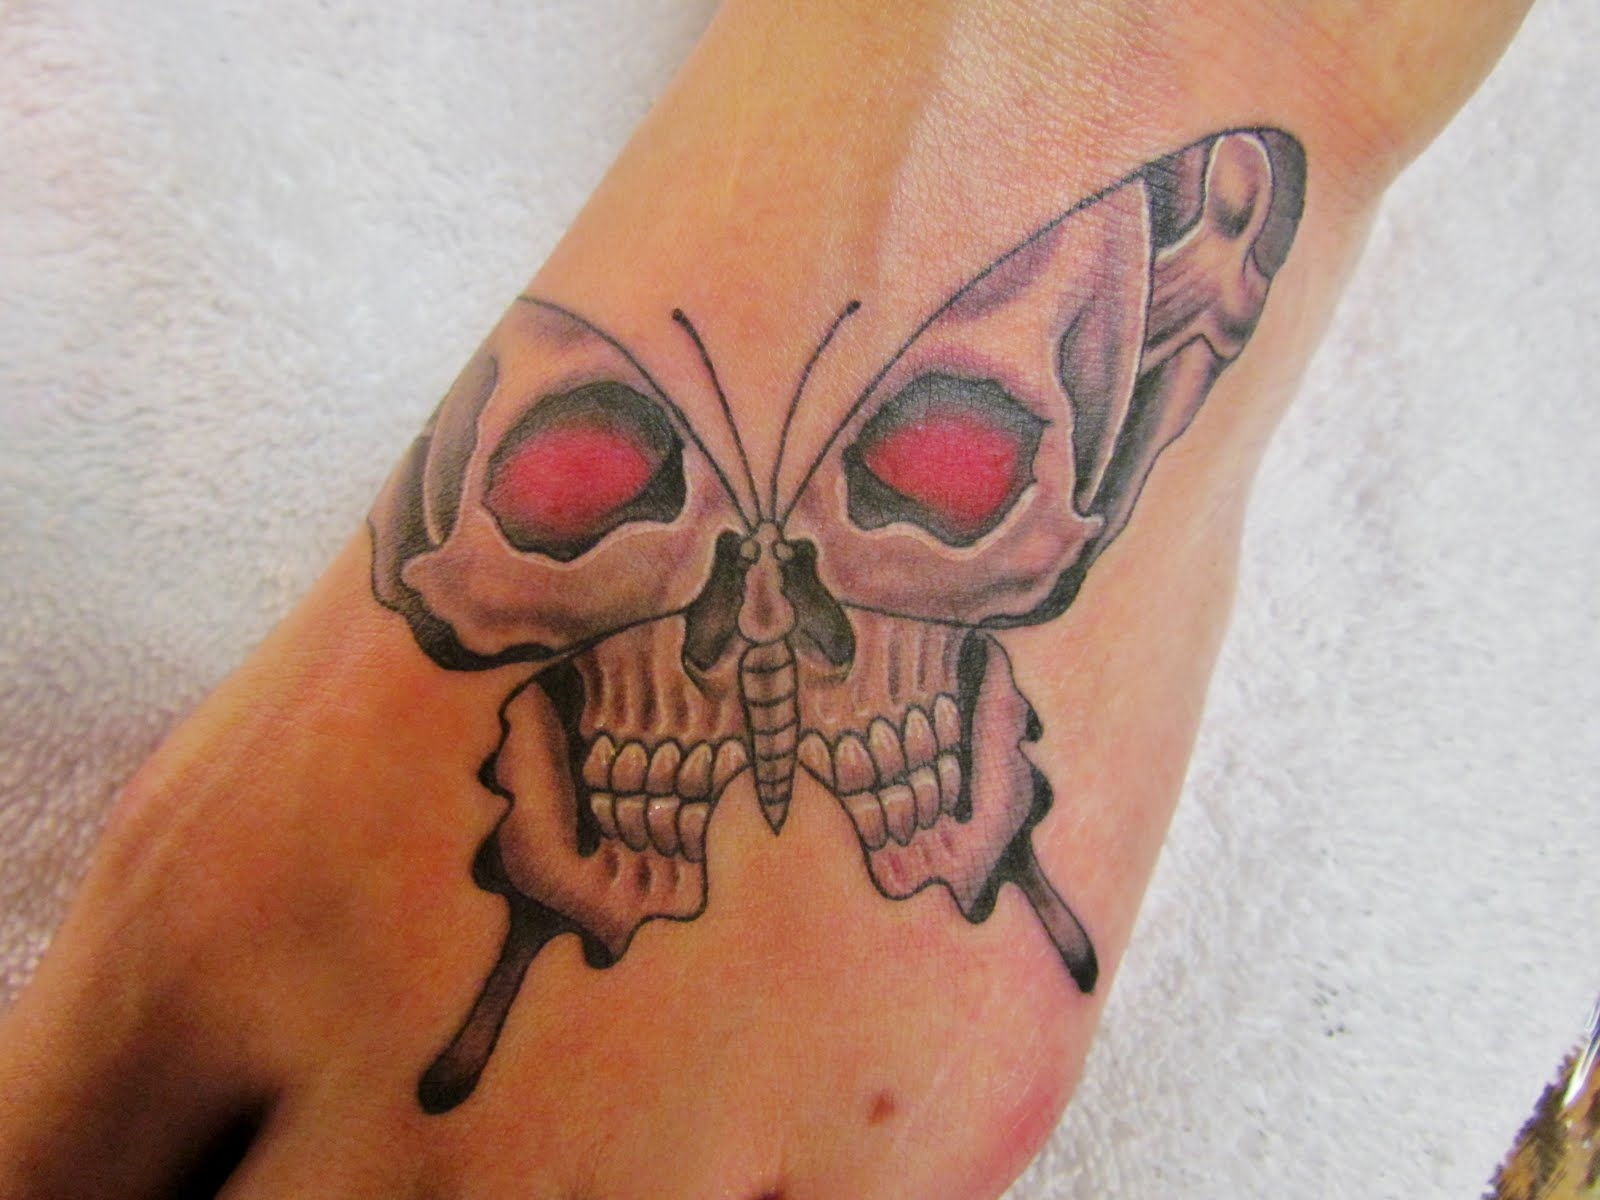 Skull Butterfly Tattoo Design Is A Hybrid Of Symbols While Butterflies